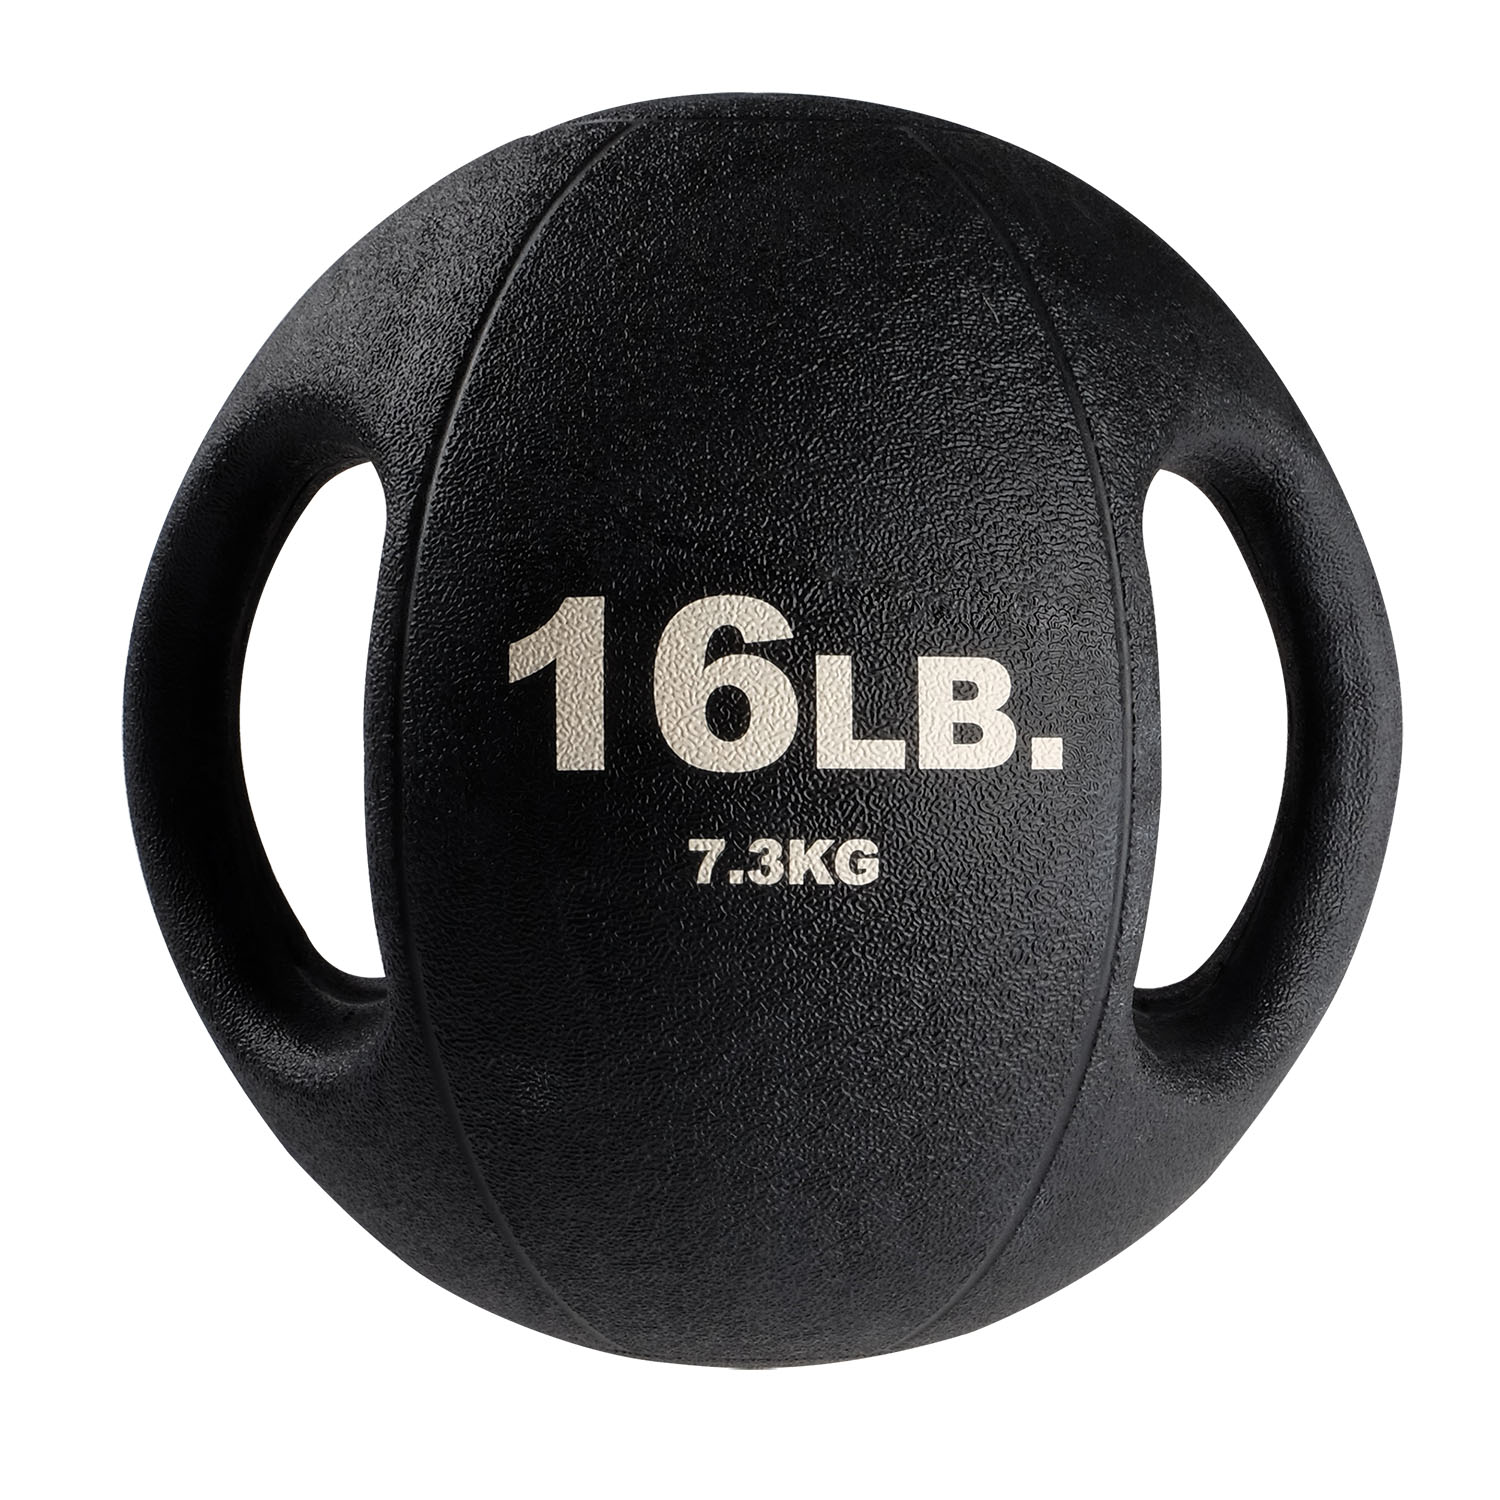 BSTDMB16 16lb BLack Dual Grip Medicine Ball